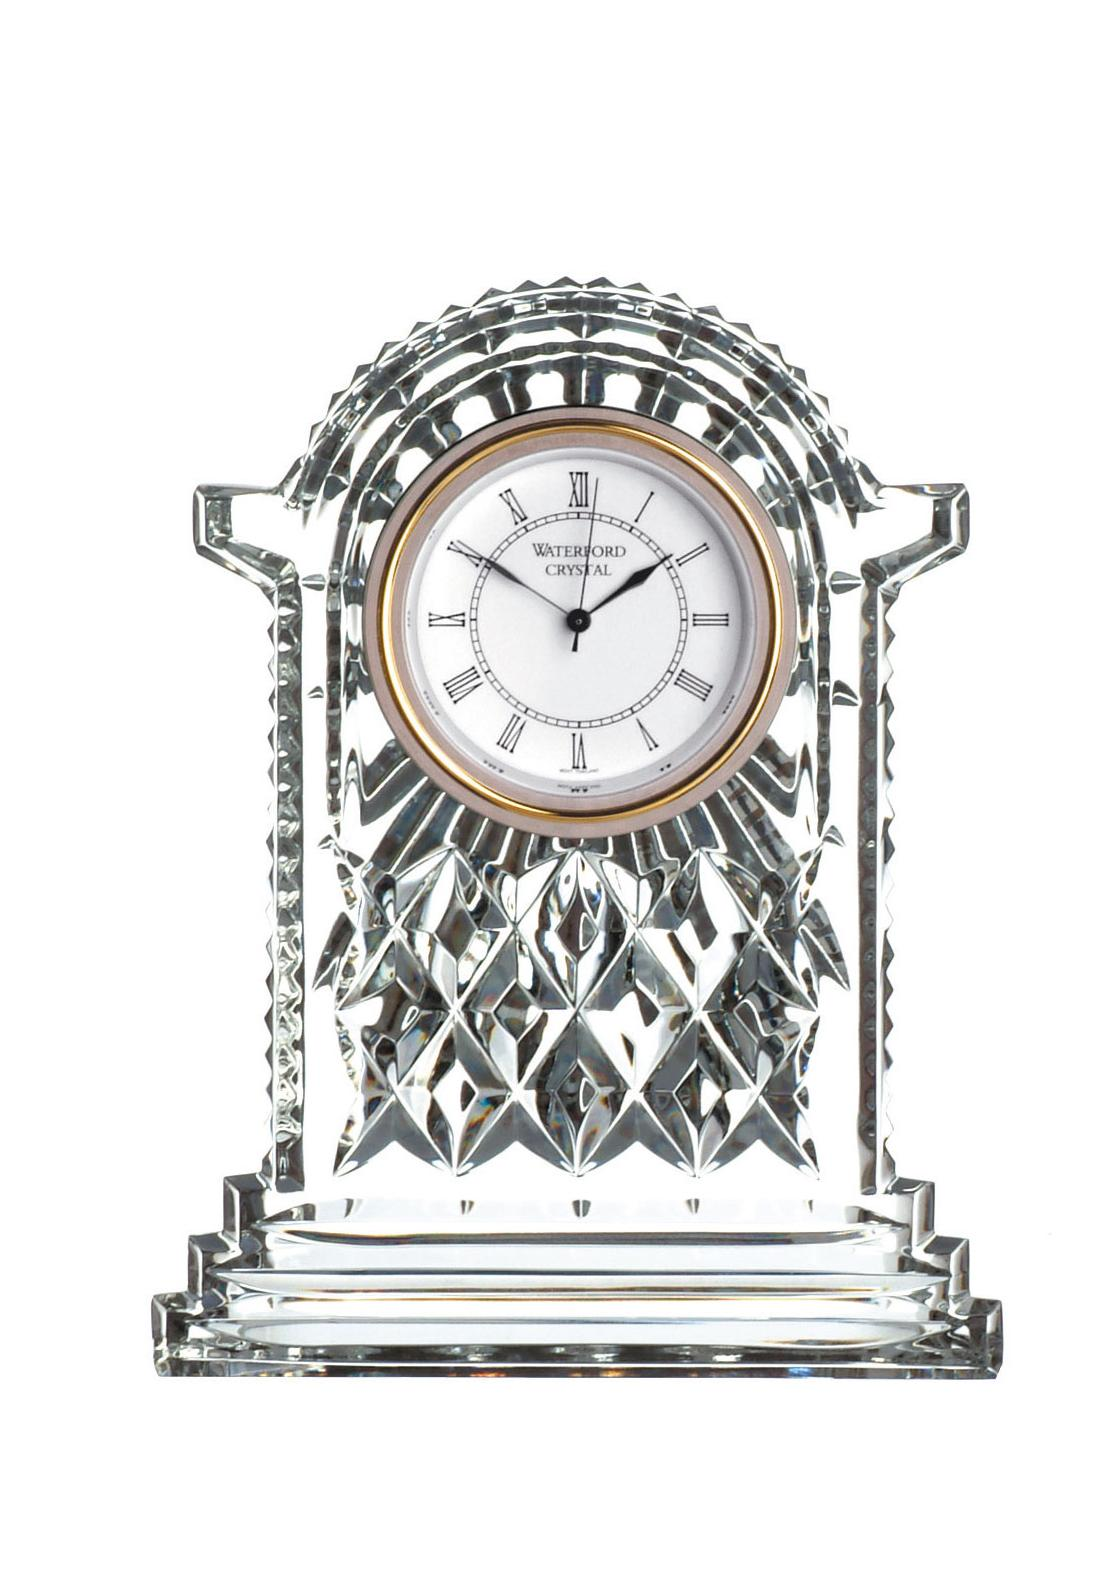 Waterford Crystal Carriage Clock, Large